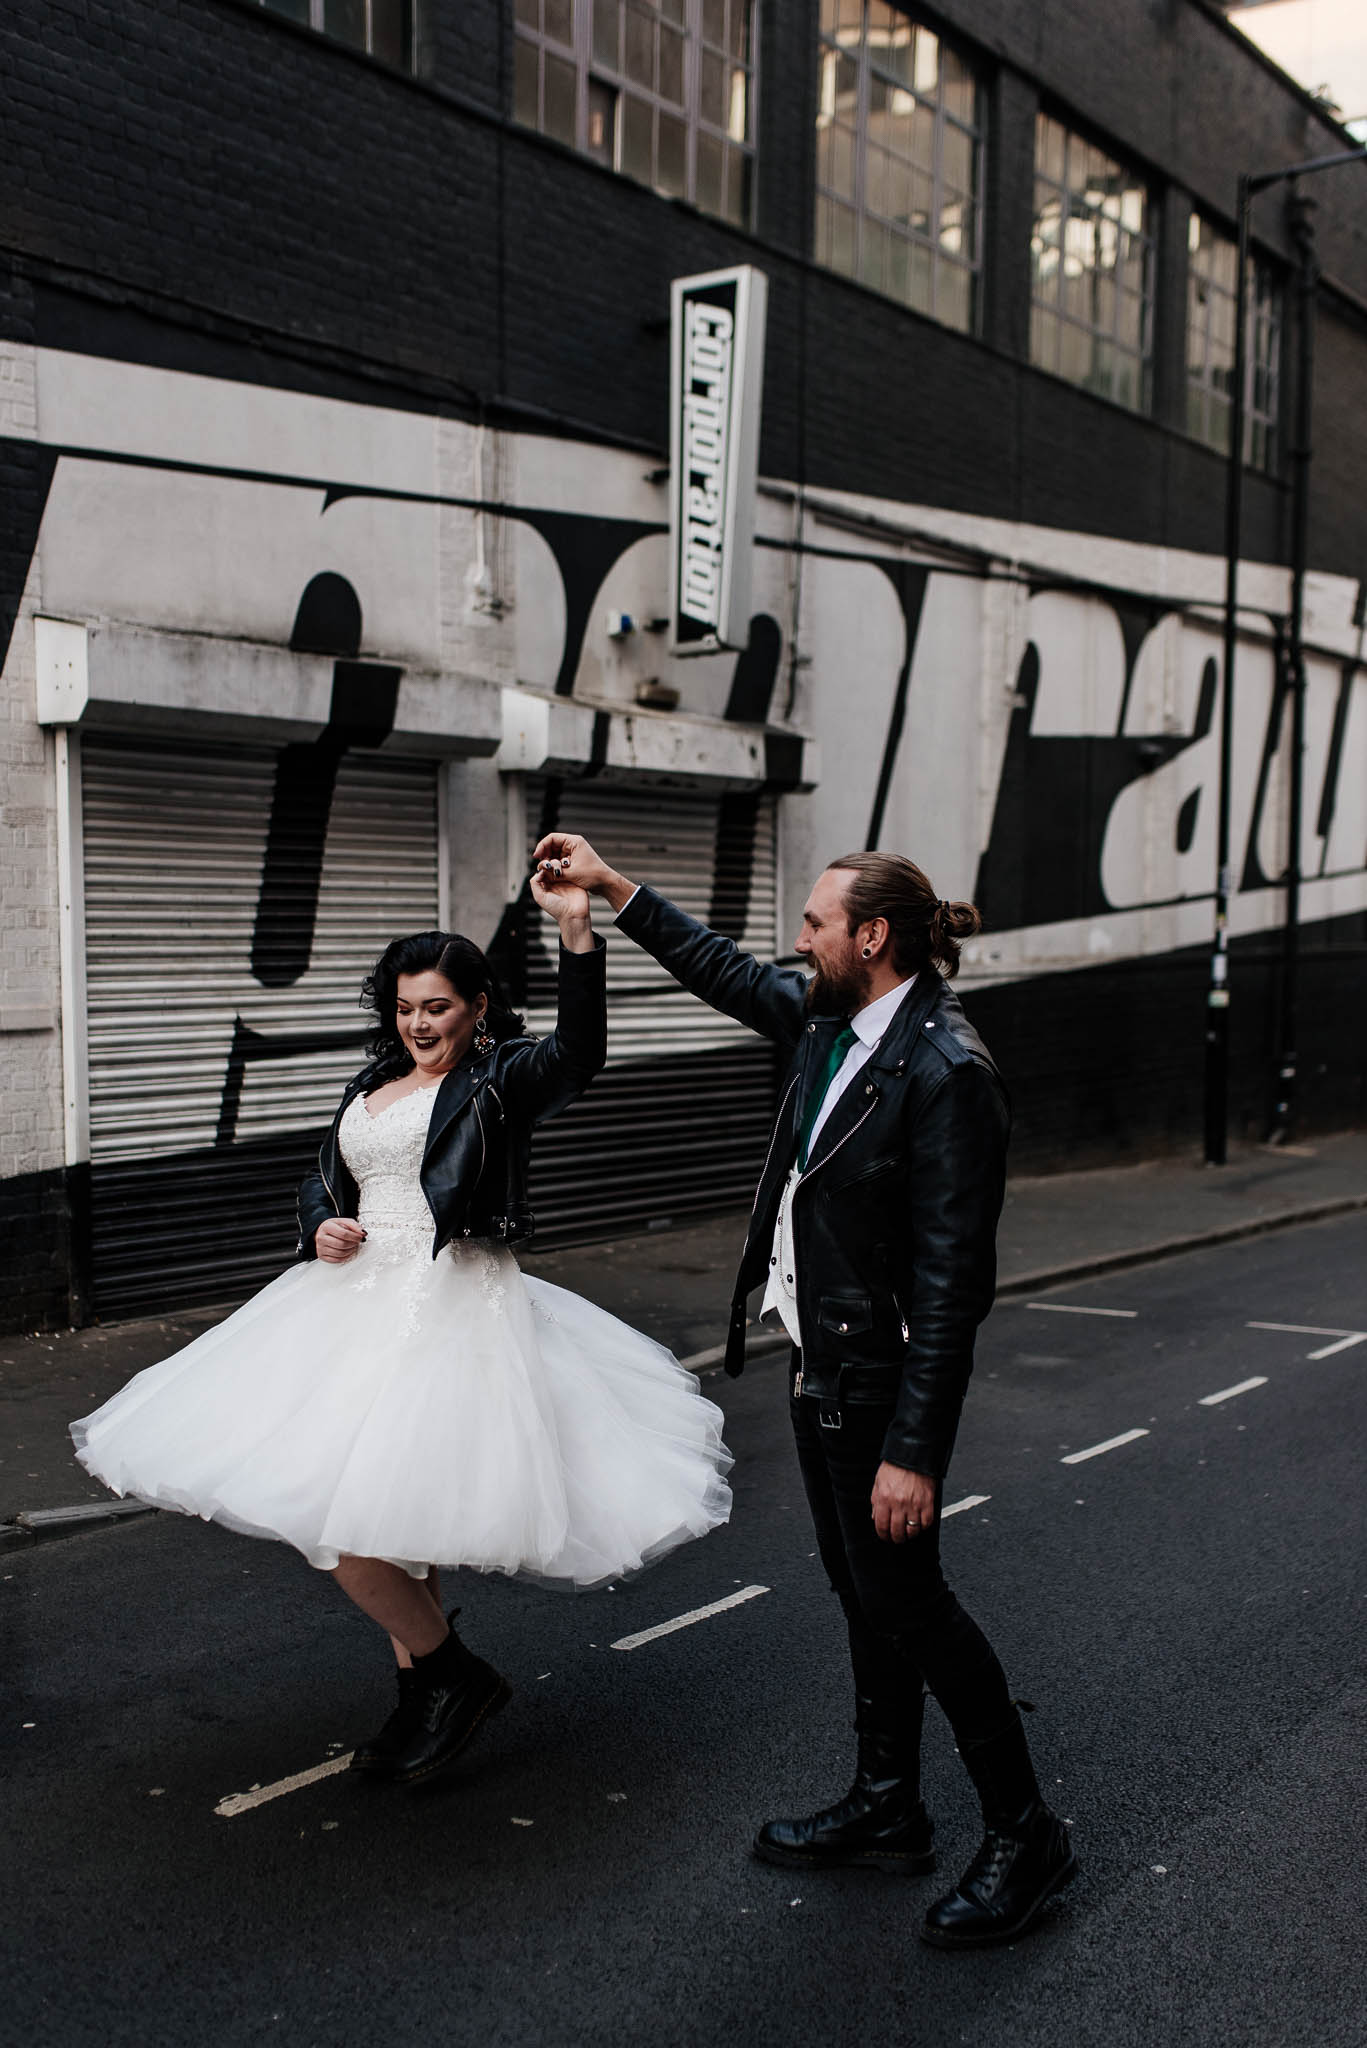 Bride and groom dancing during a post wedding shoot in Sheffield